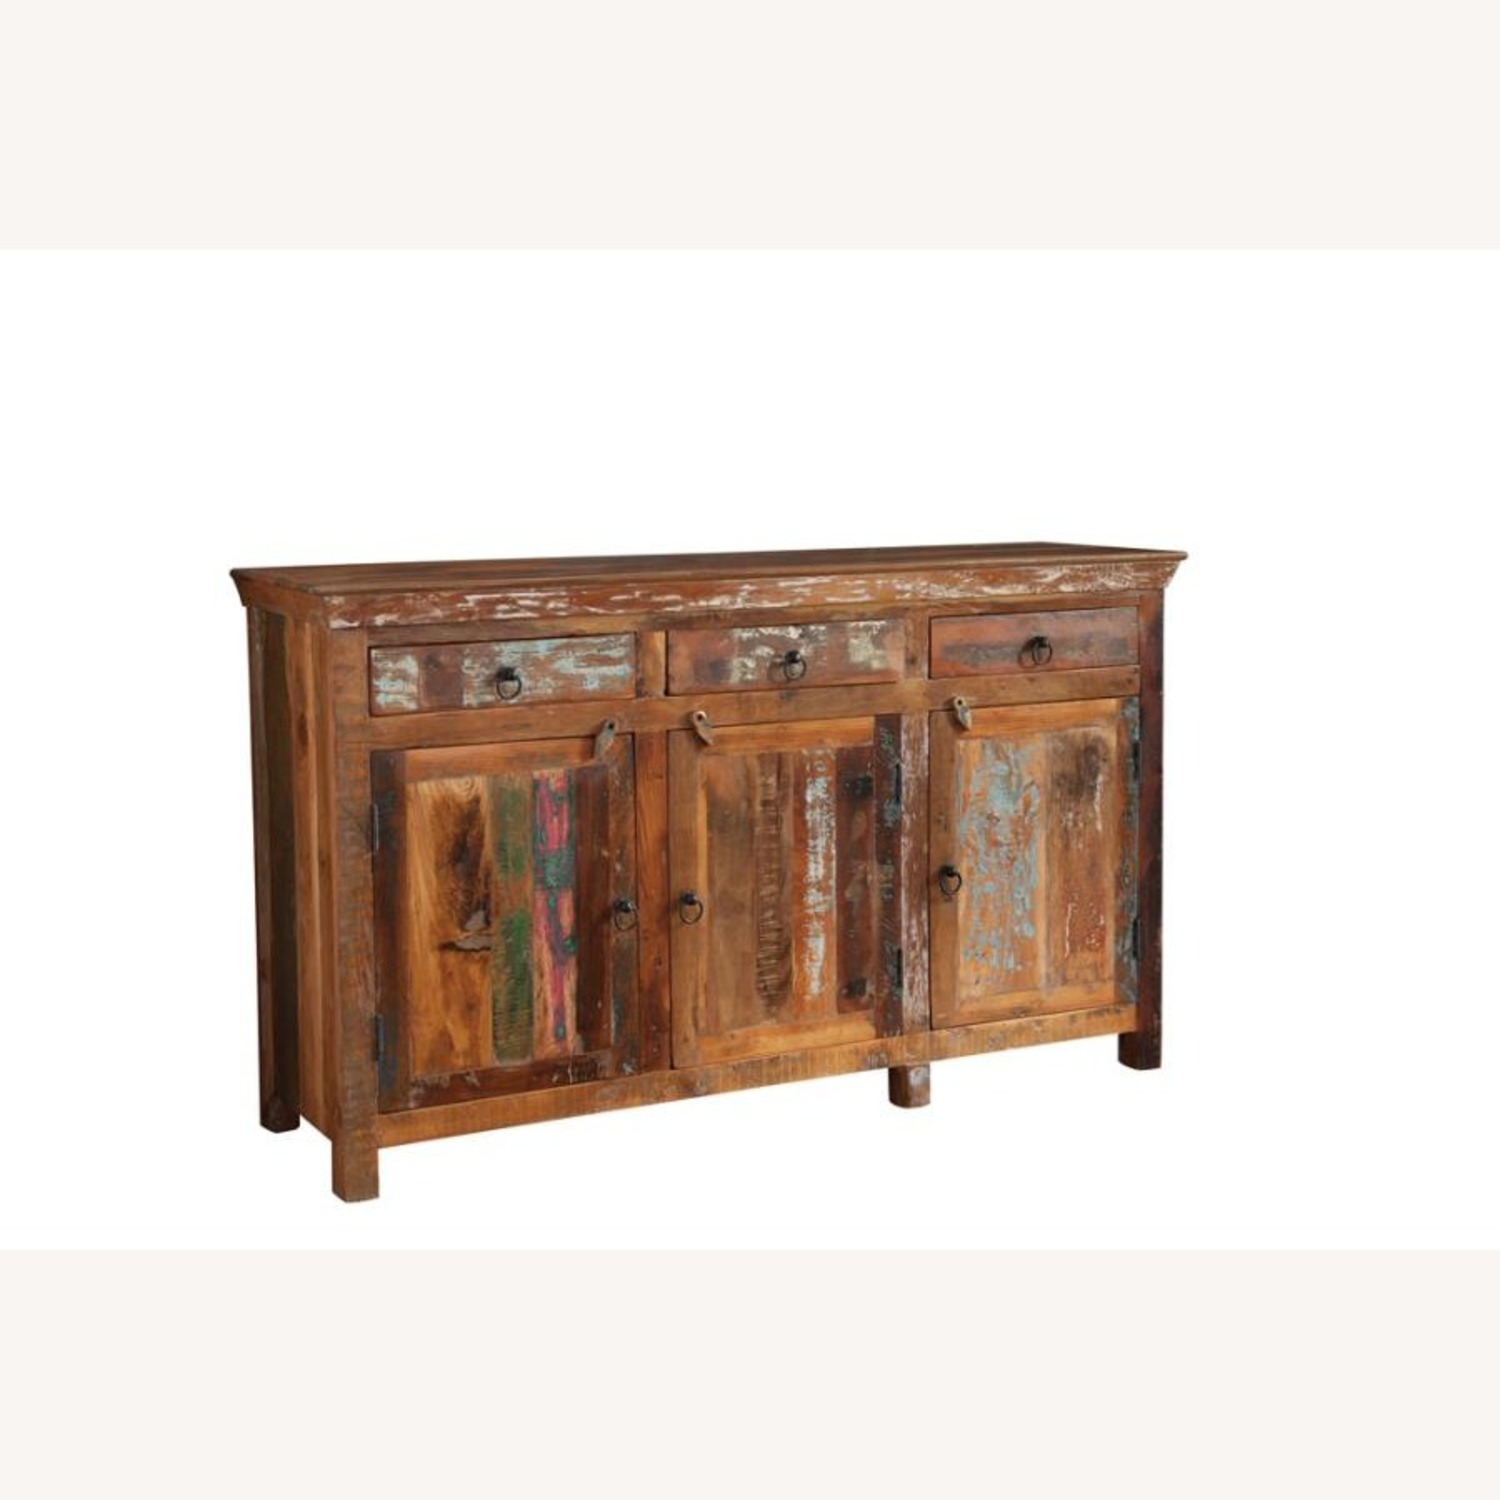 Accent Cabinet In Reclaimed Wood Finish - image-0